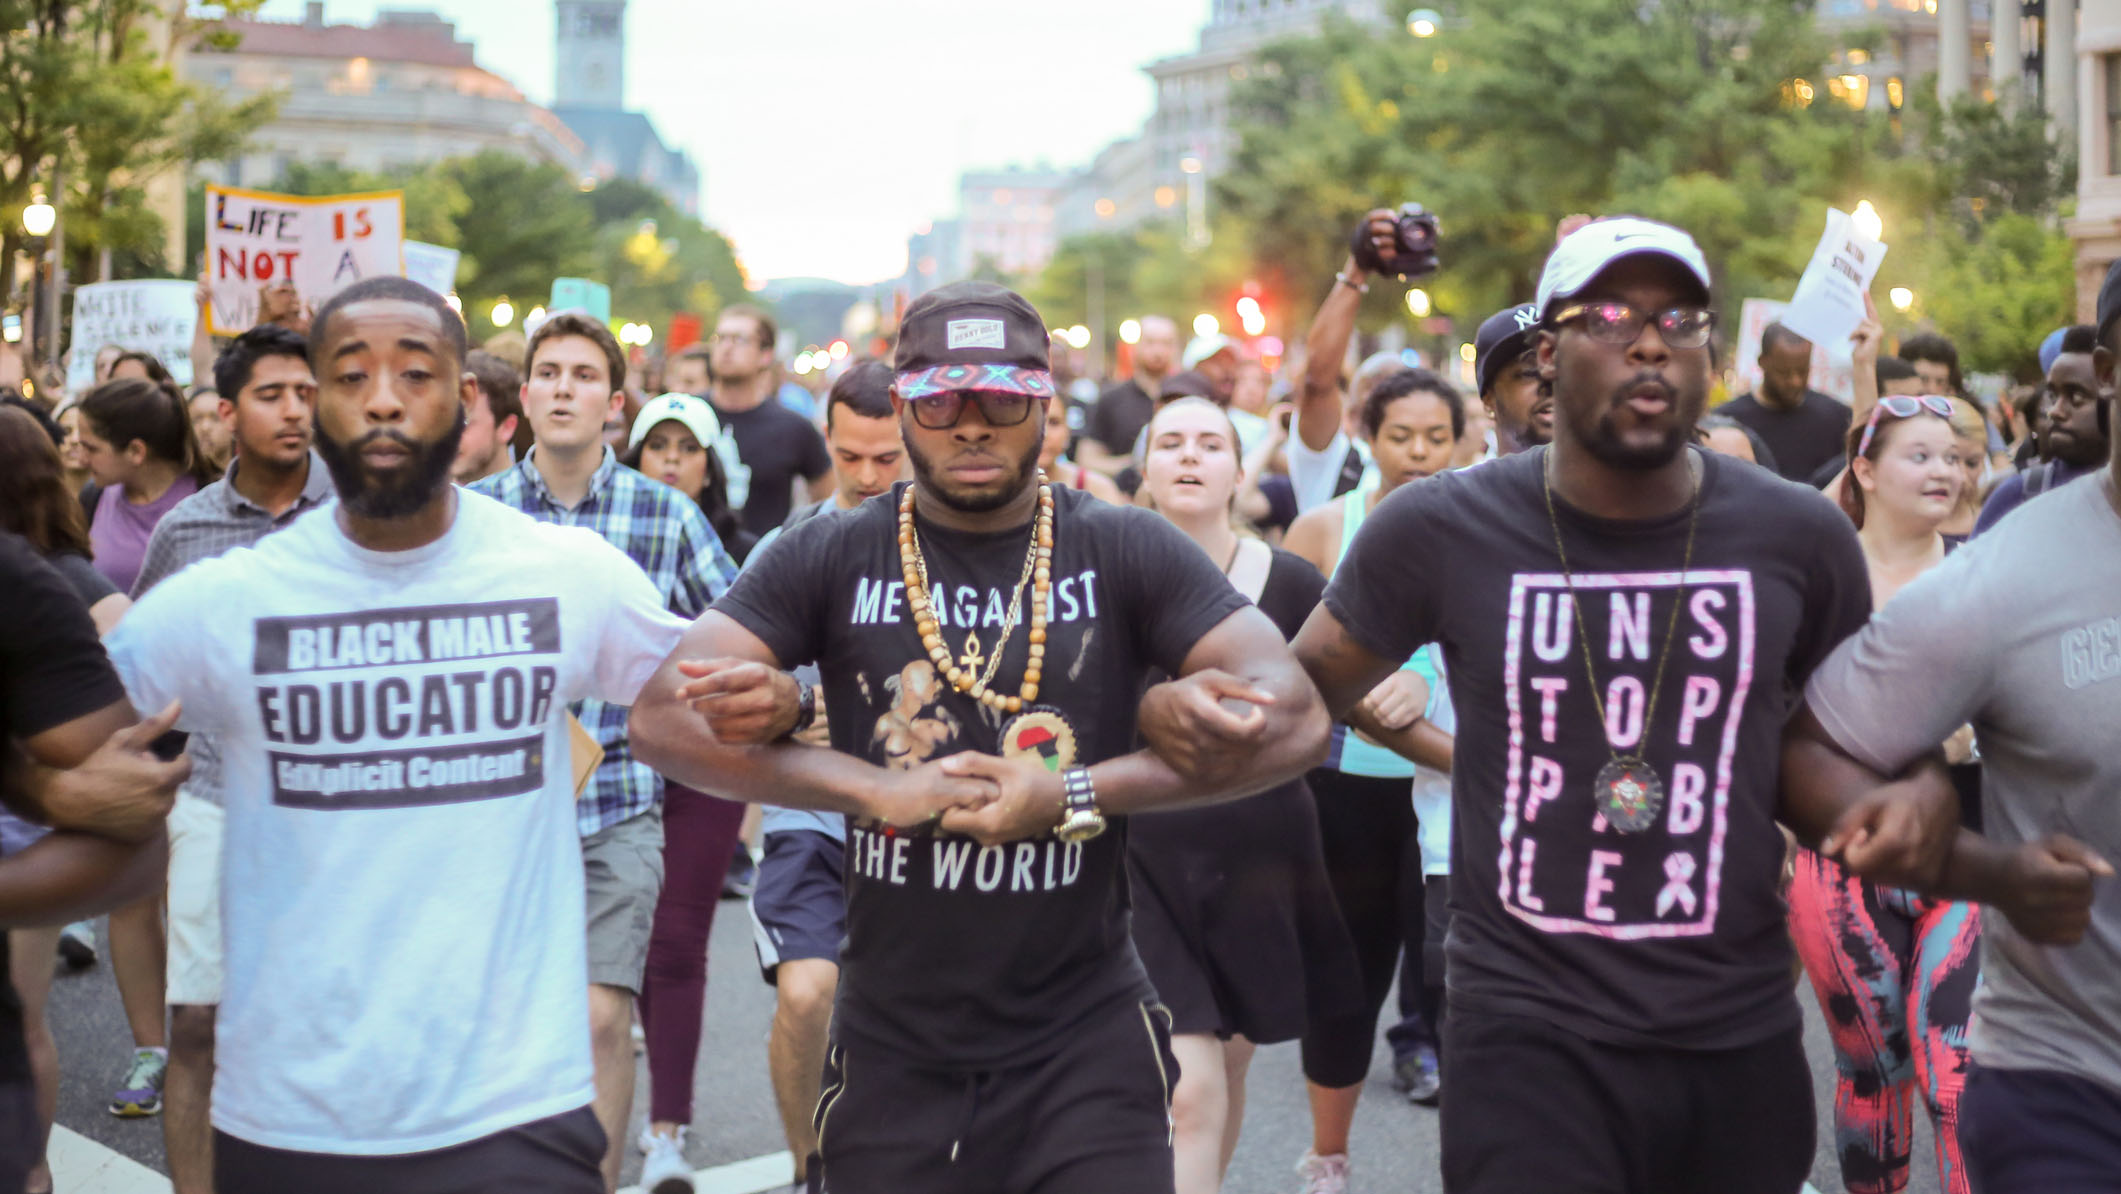 Amid Racial Injustice and COVID-19, There's Still Hope